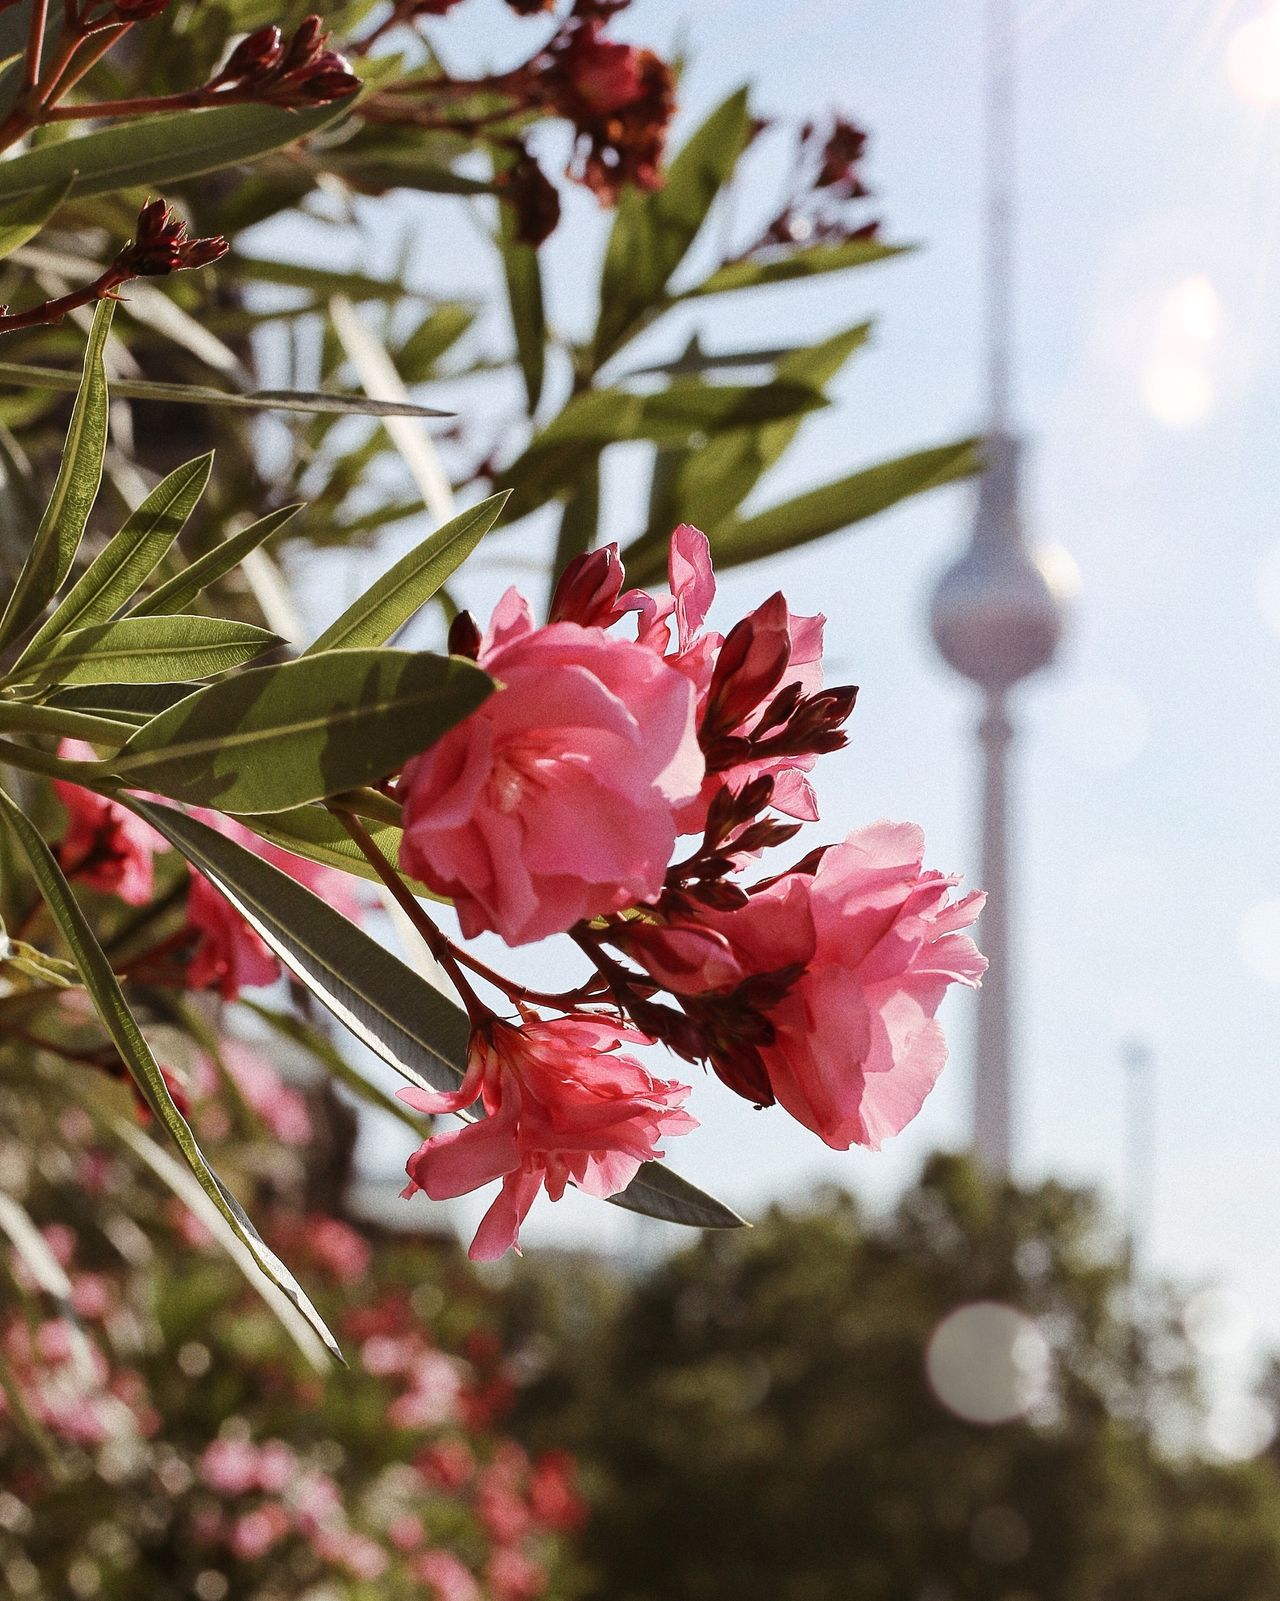 EyeEm Selects Flower Growth Petal Fragility Tree Nature Beauty In Nature Flower Head Day Blossom Freshness Branch No People Outdoors Pink Color Low Angle View Plant Close-up Blooming Sky Berlin Photography Eye4photography  Sunlight